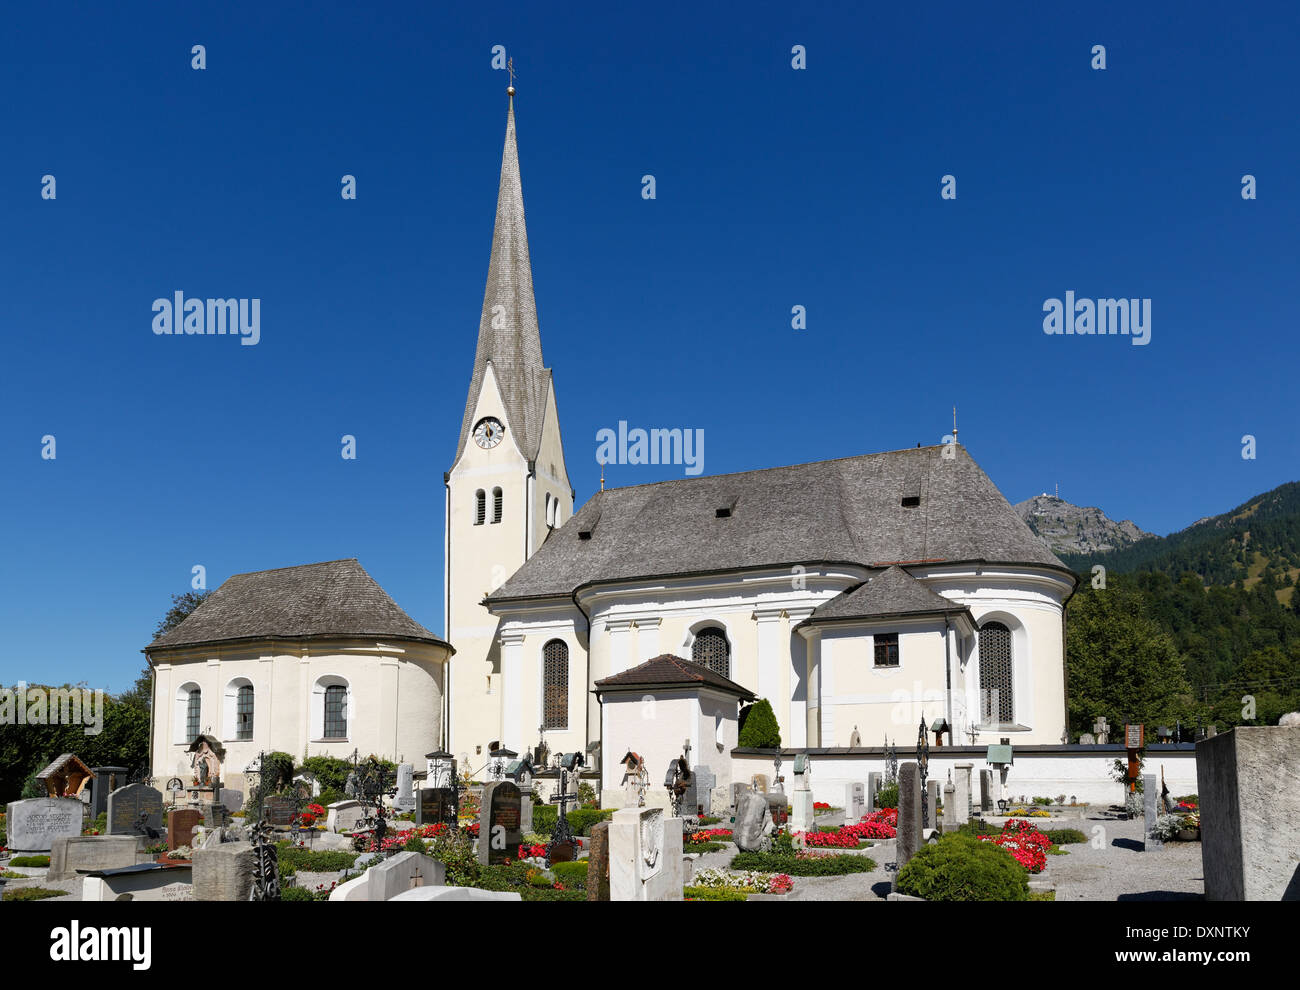 Germany, Upper Bavaria, Bayrischzell, St Margaret's Church - Stock Image